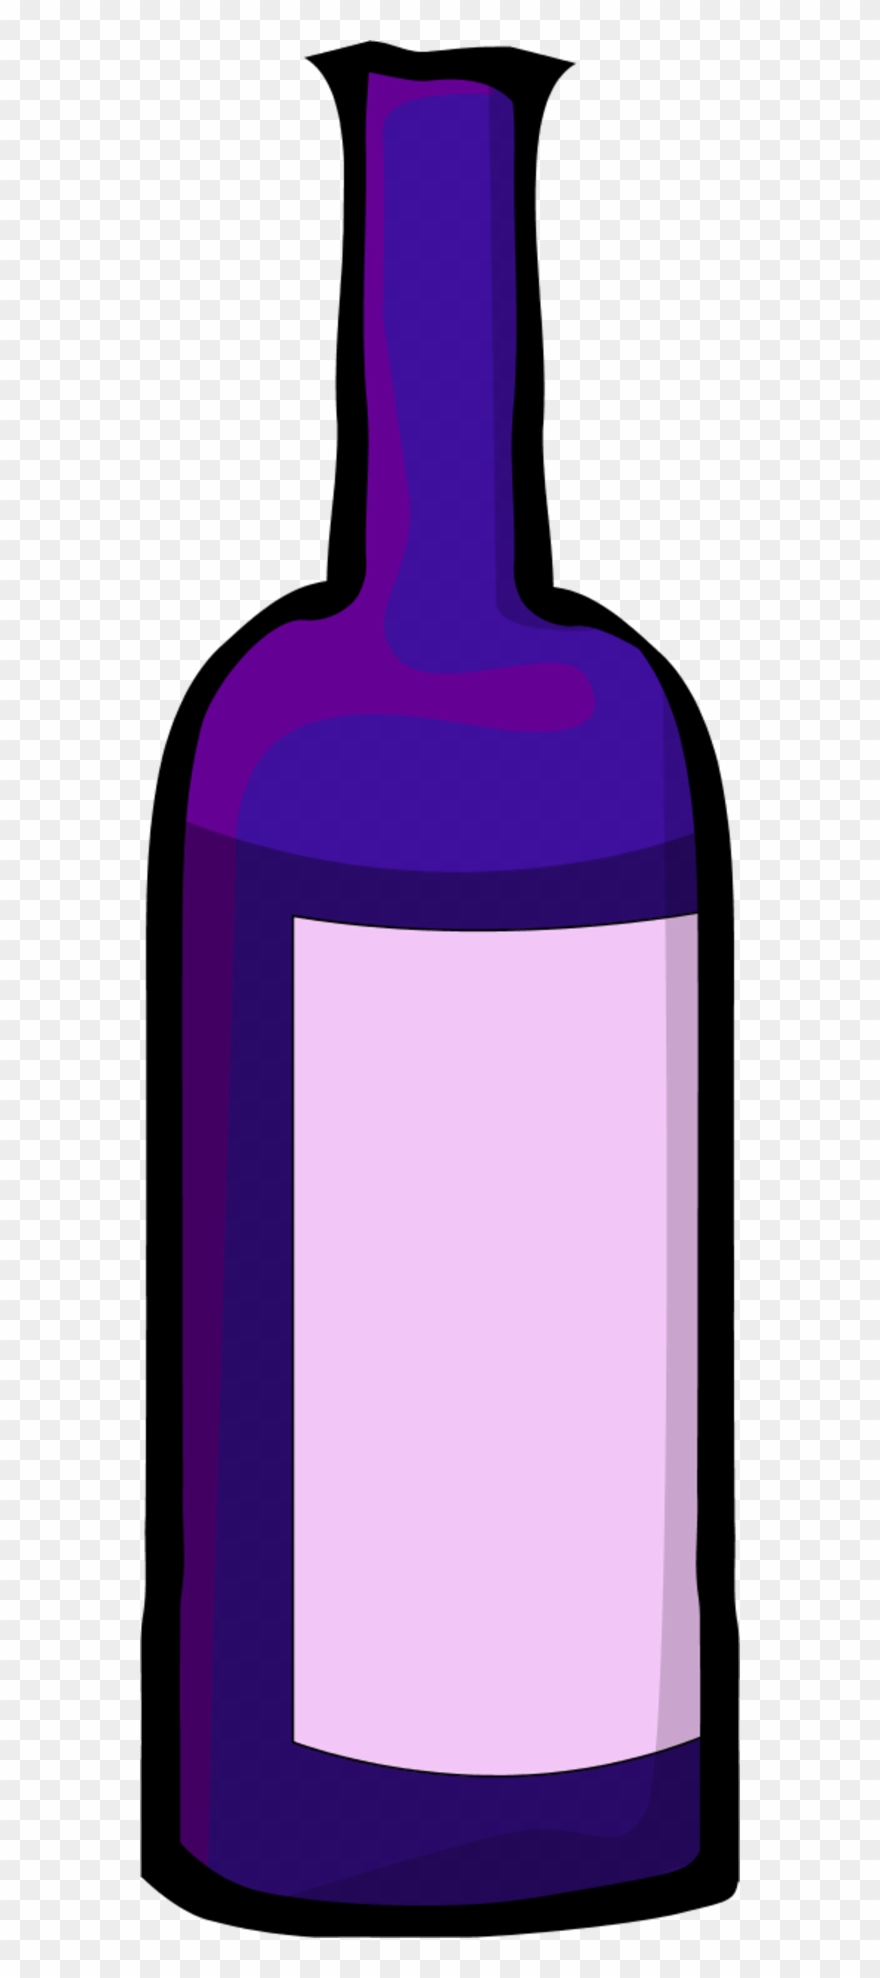 Bottle clipart animated. Food wine gallery free